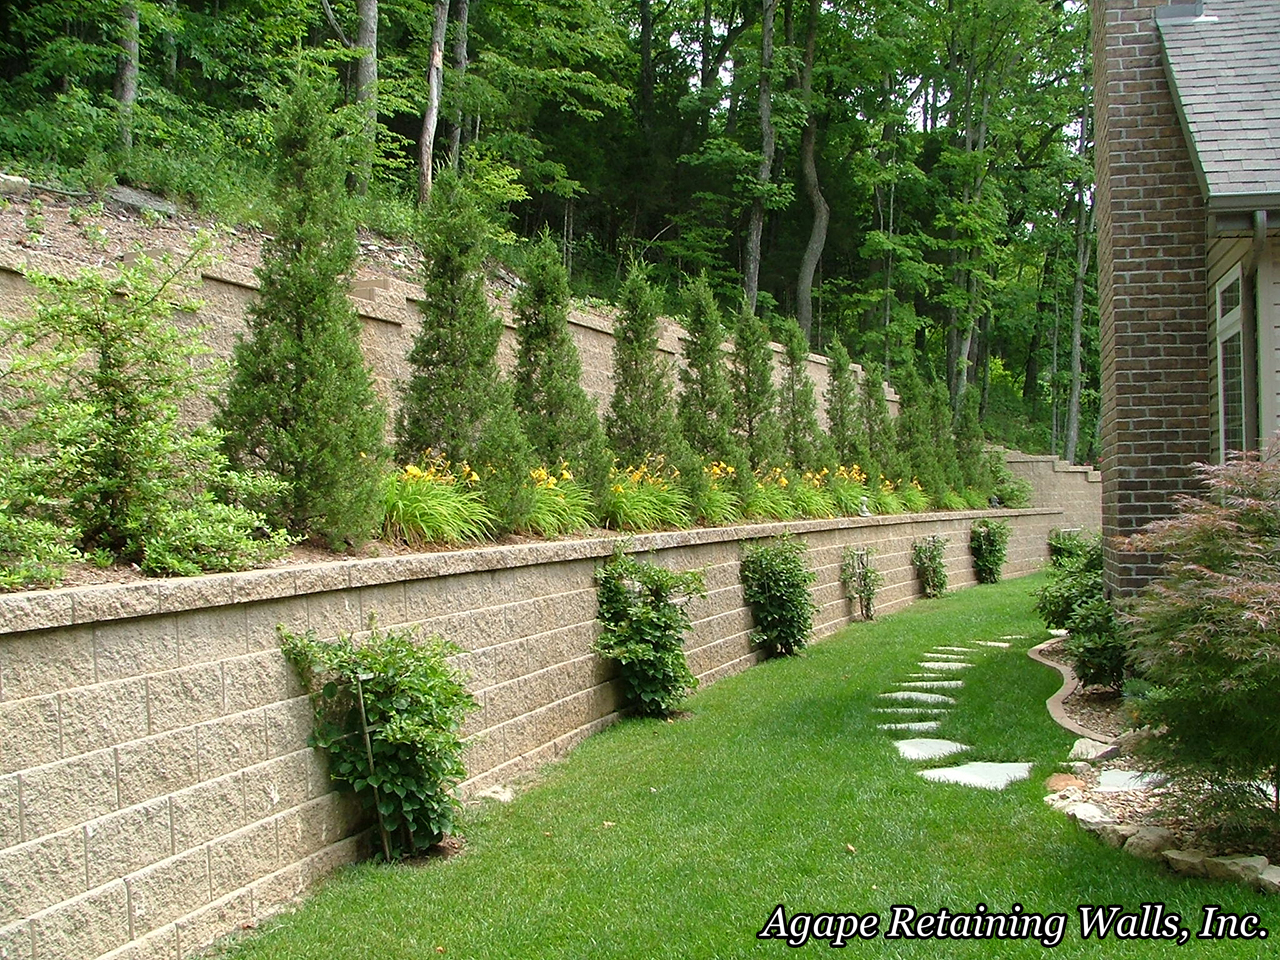 Agape Retaining Walls, Inc Terrace Photo Album 2